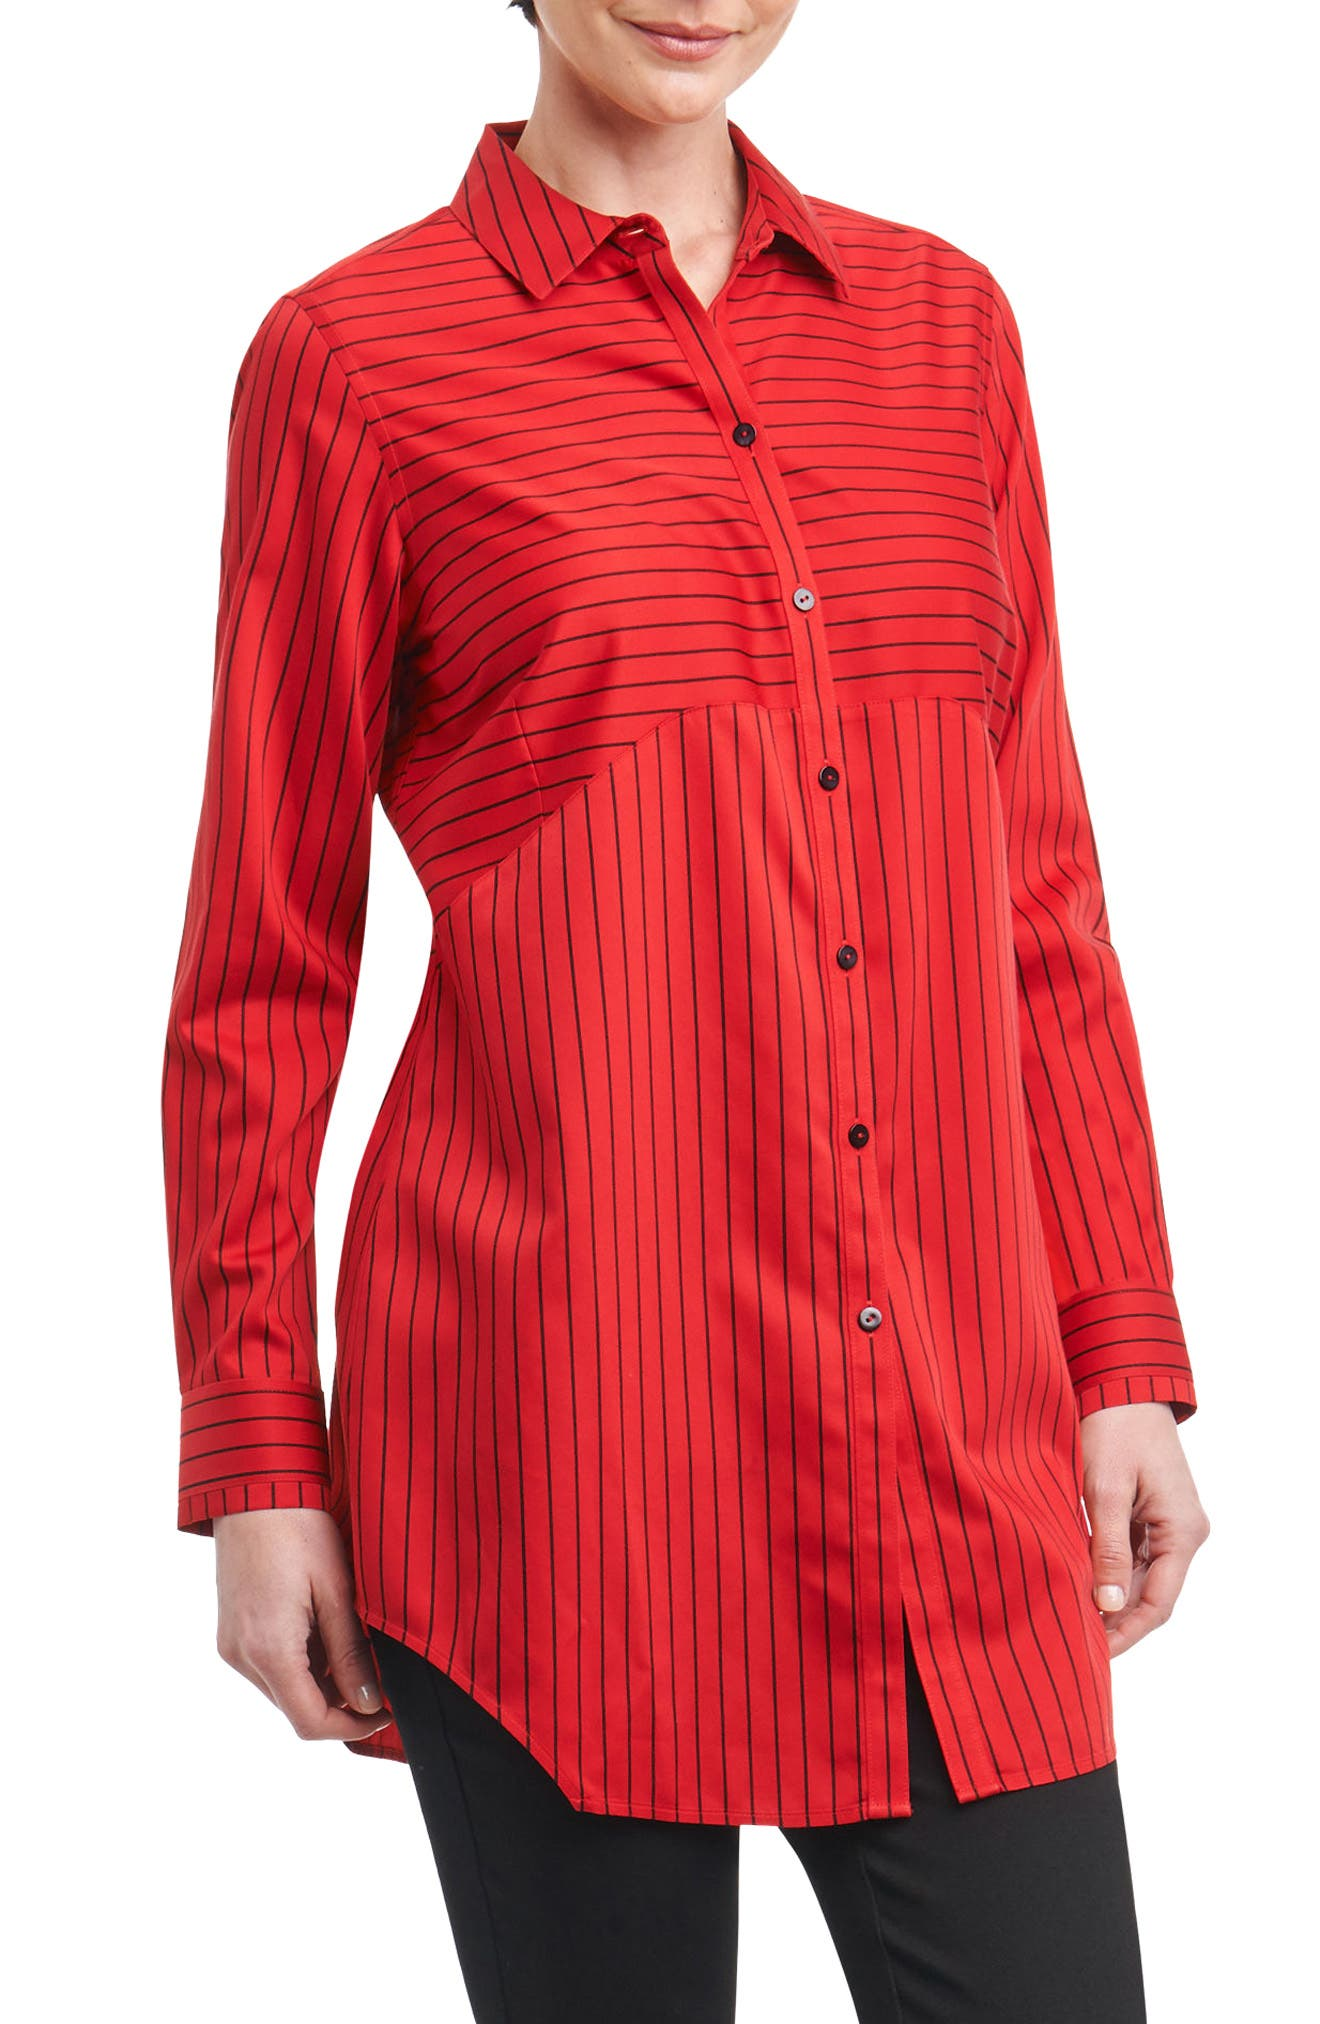 Foxcroft Gina in Holiday Stripe Shirt